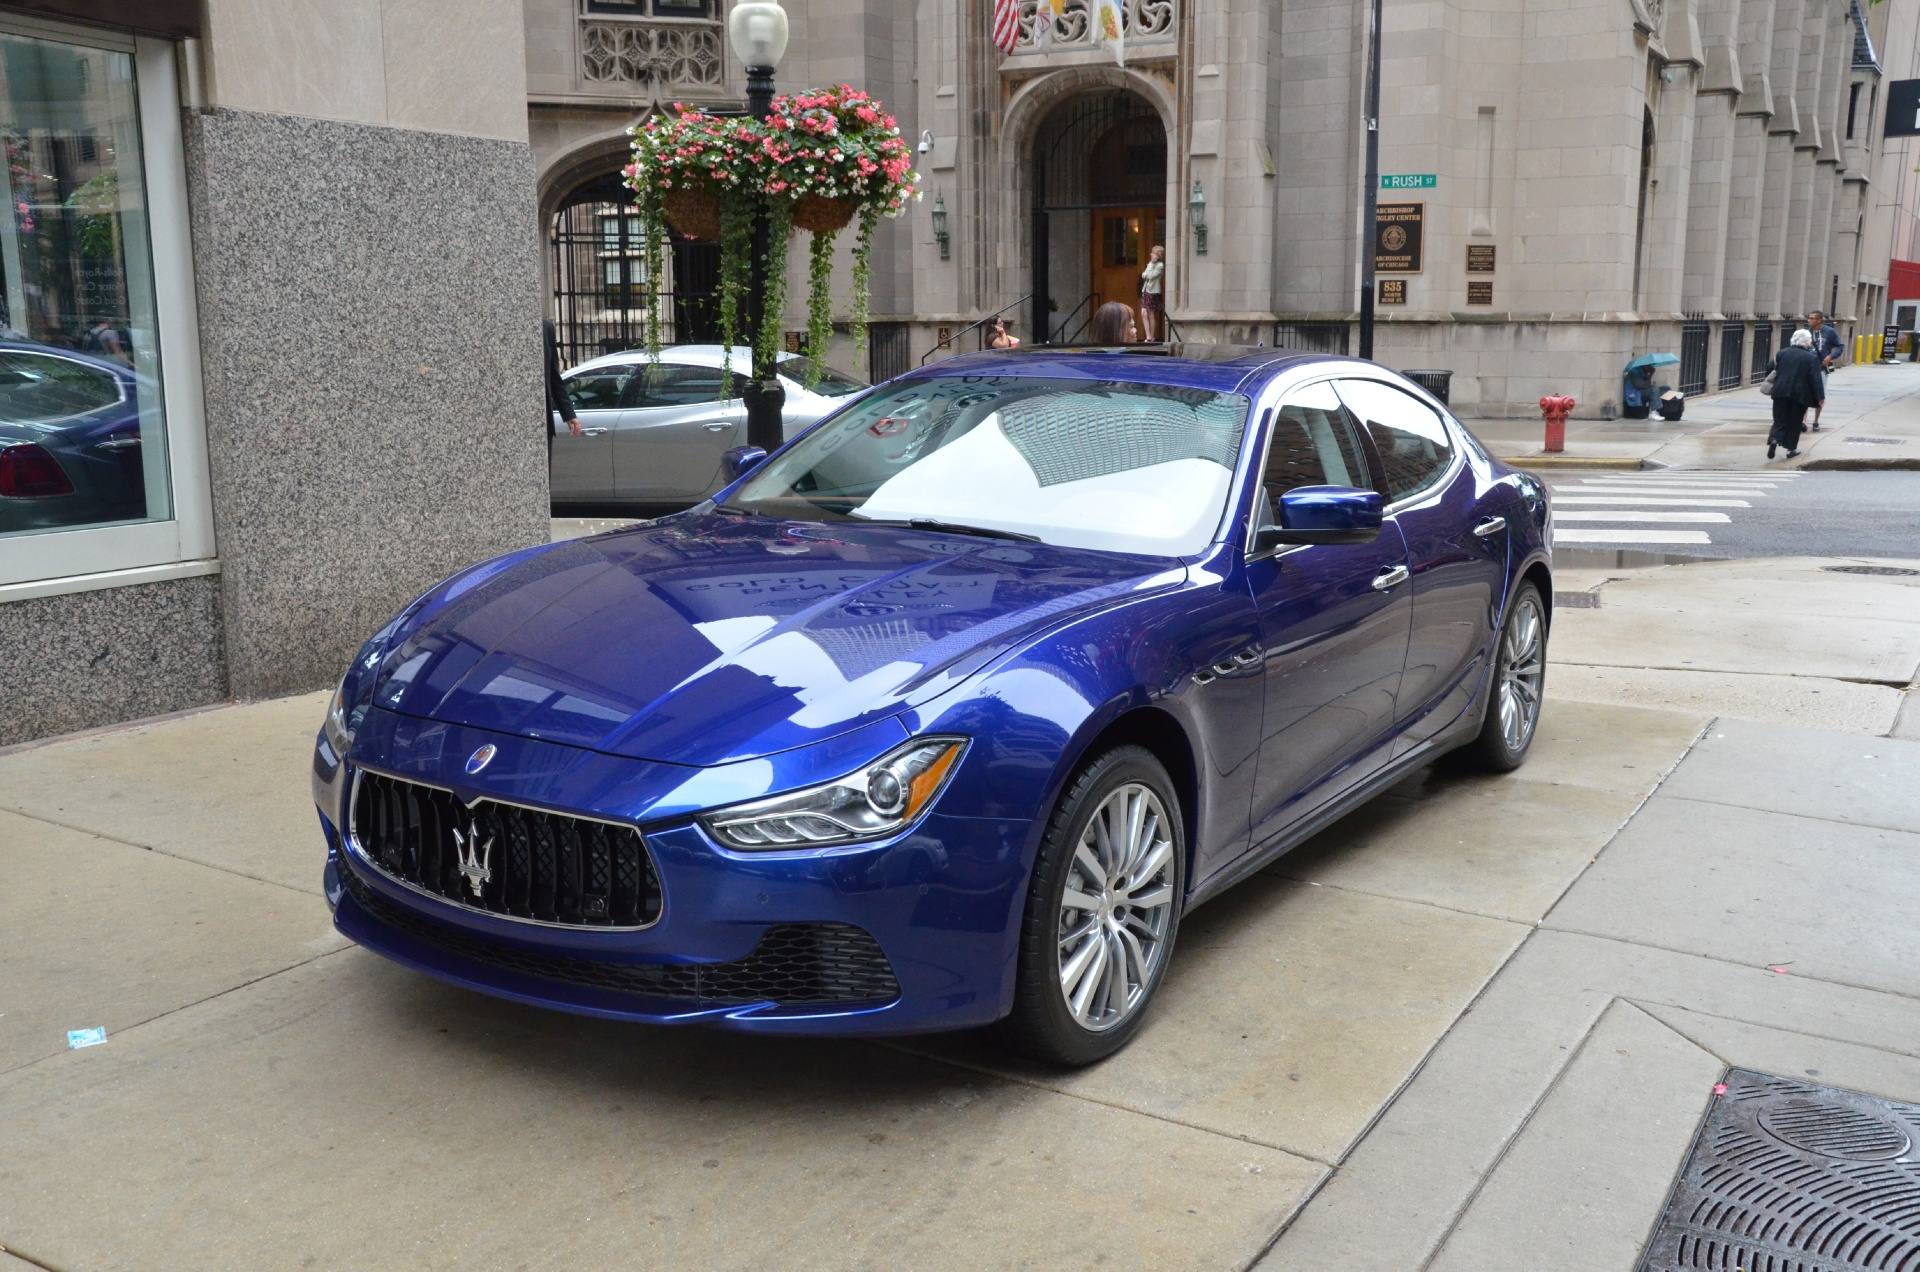 2014 maserati ghibli s q4 current models drive away 2day. Black Bedroom Furniture Sets. Home Design Ideas